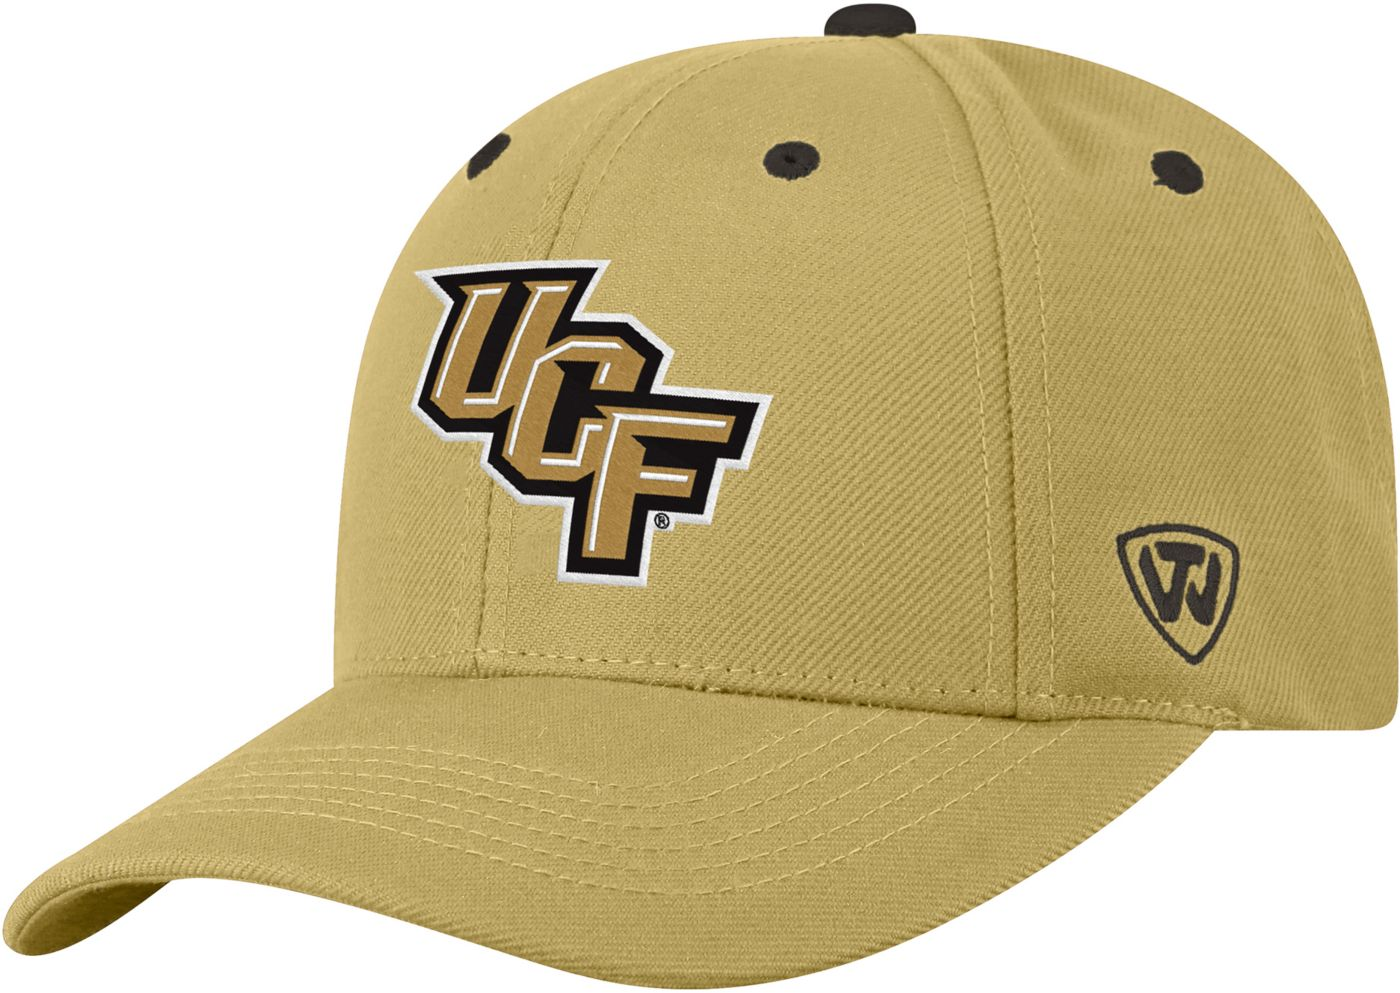 Top of the World Men's UCF Knights Gold Triple Threat Adjustable Hat